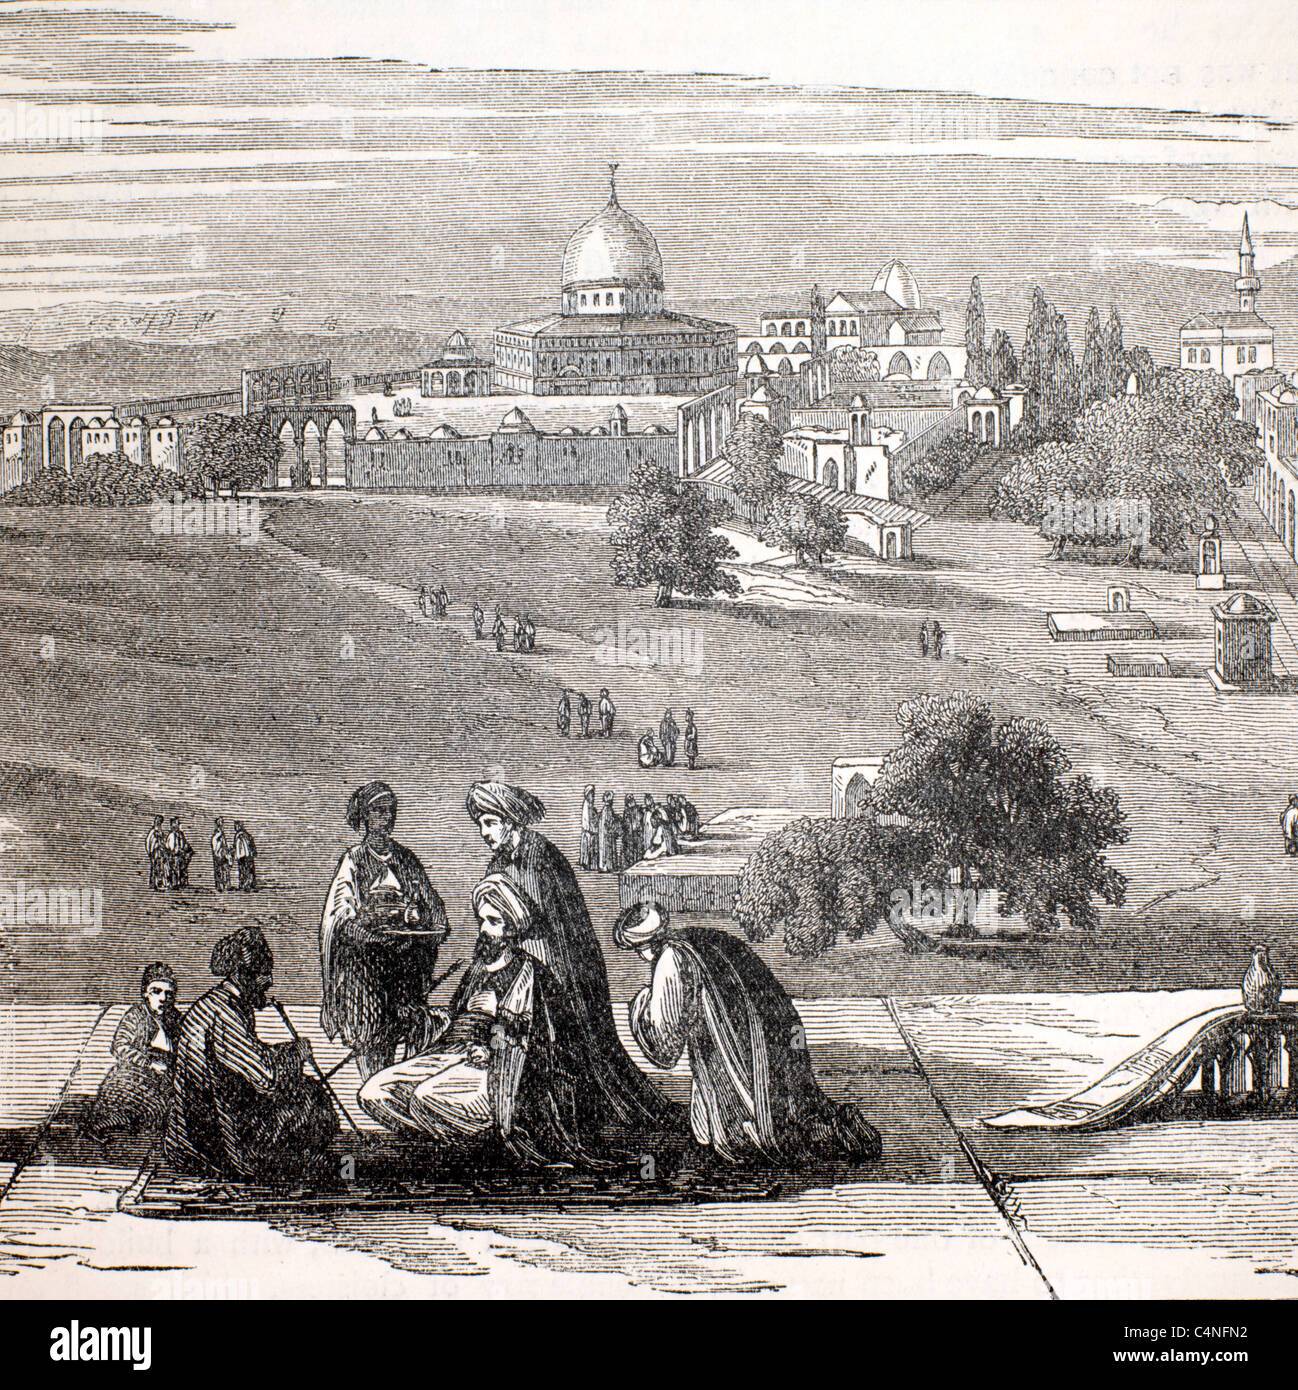 site of solomans temple Holy land wood engraving Stock Photo